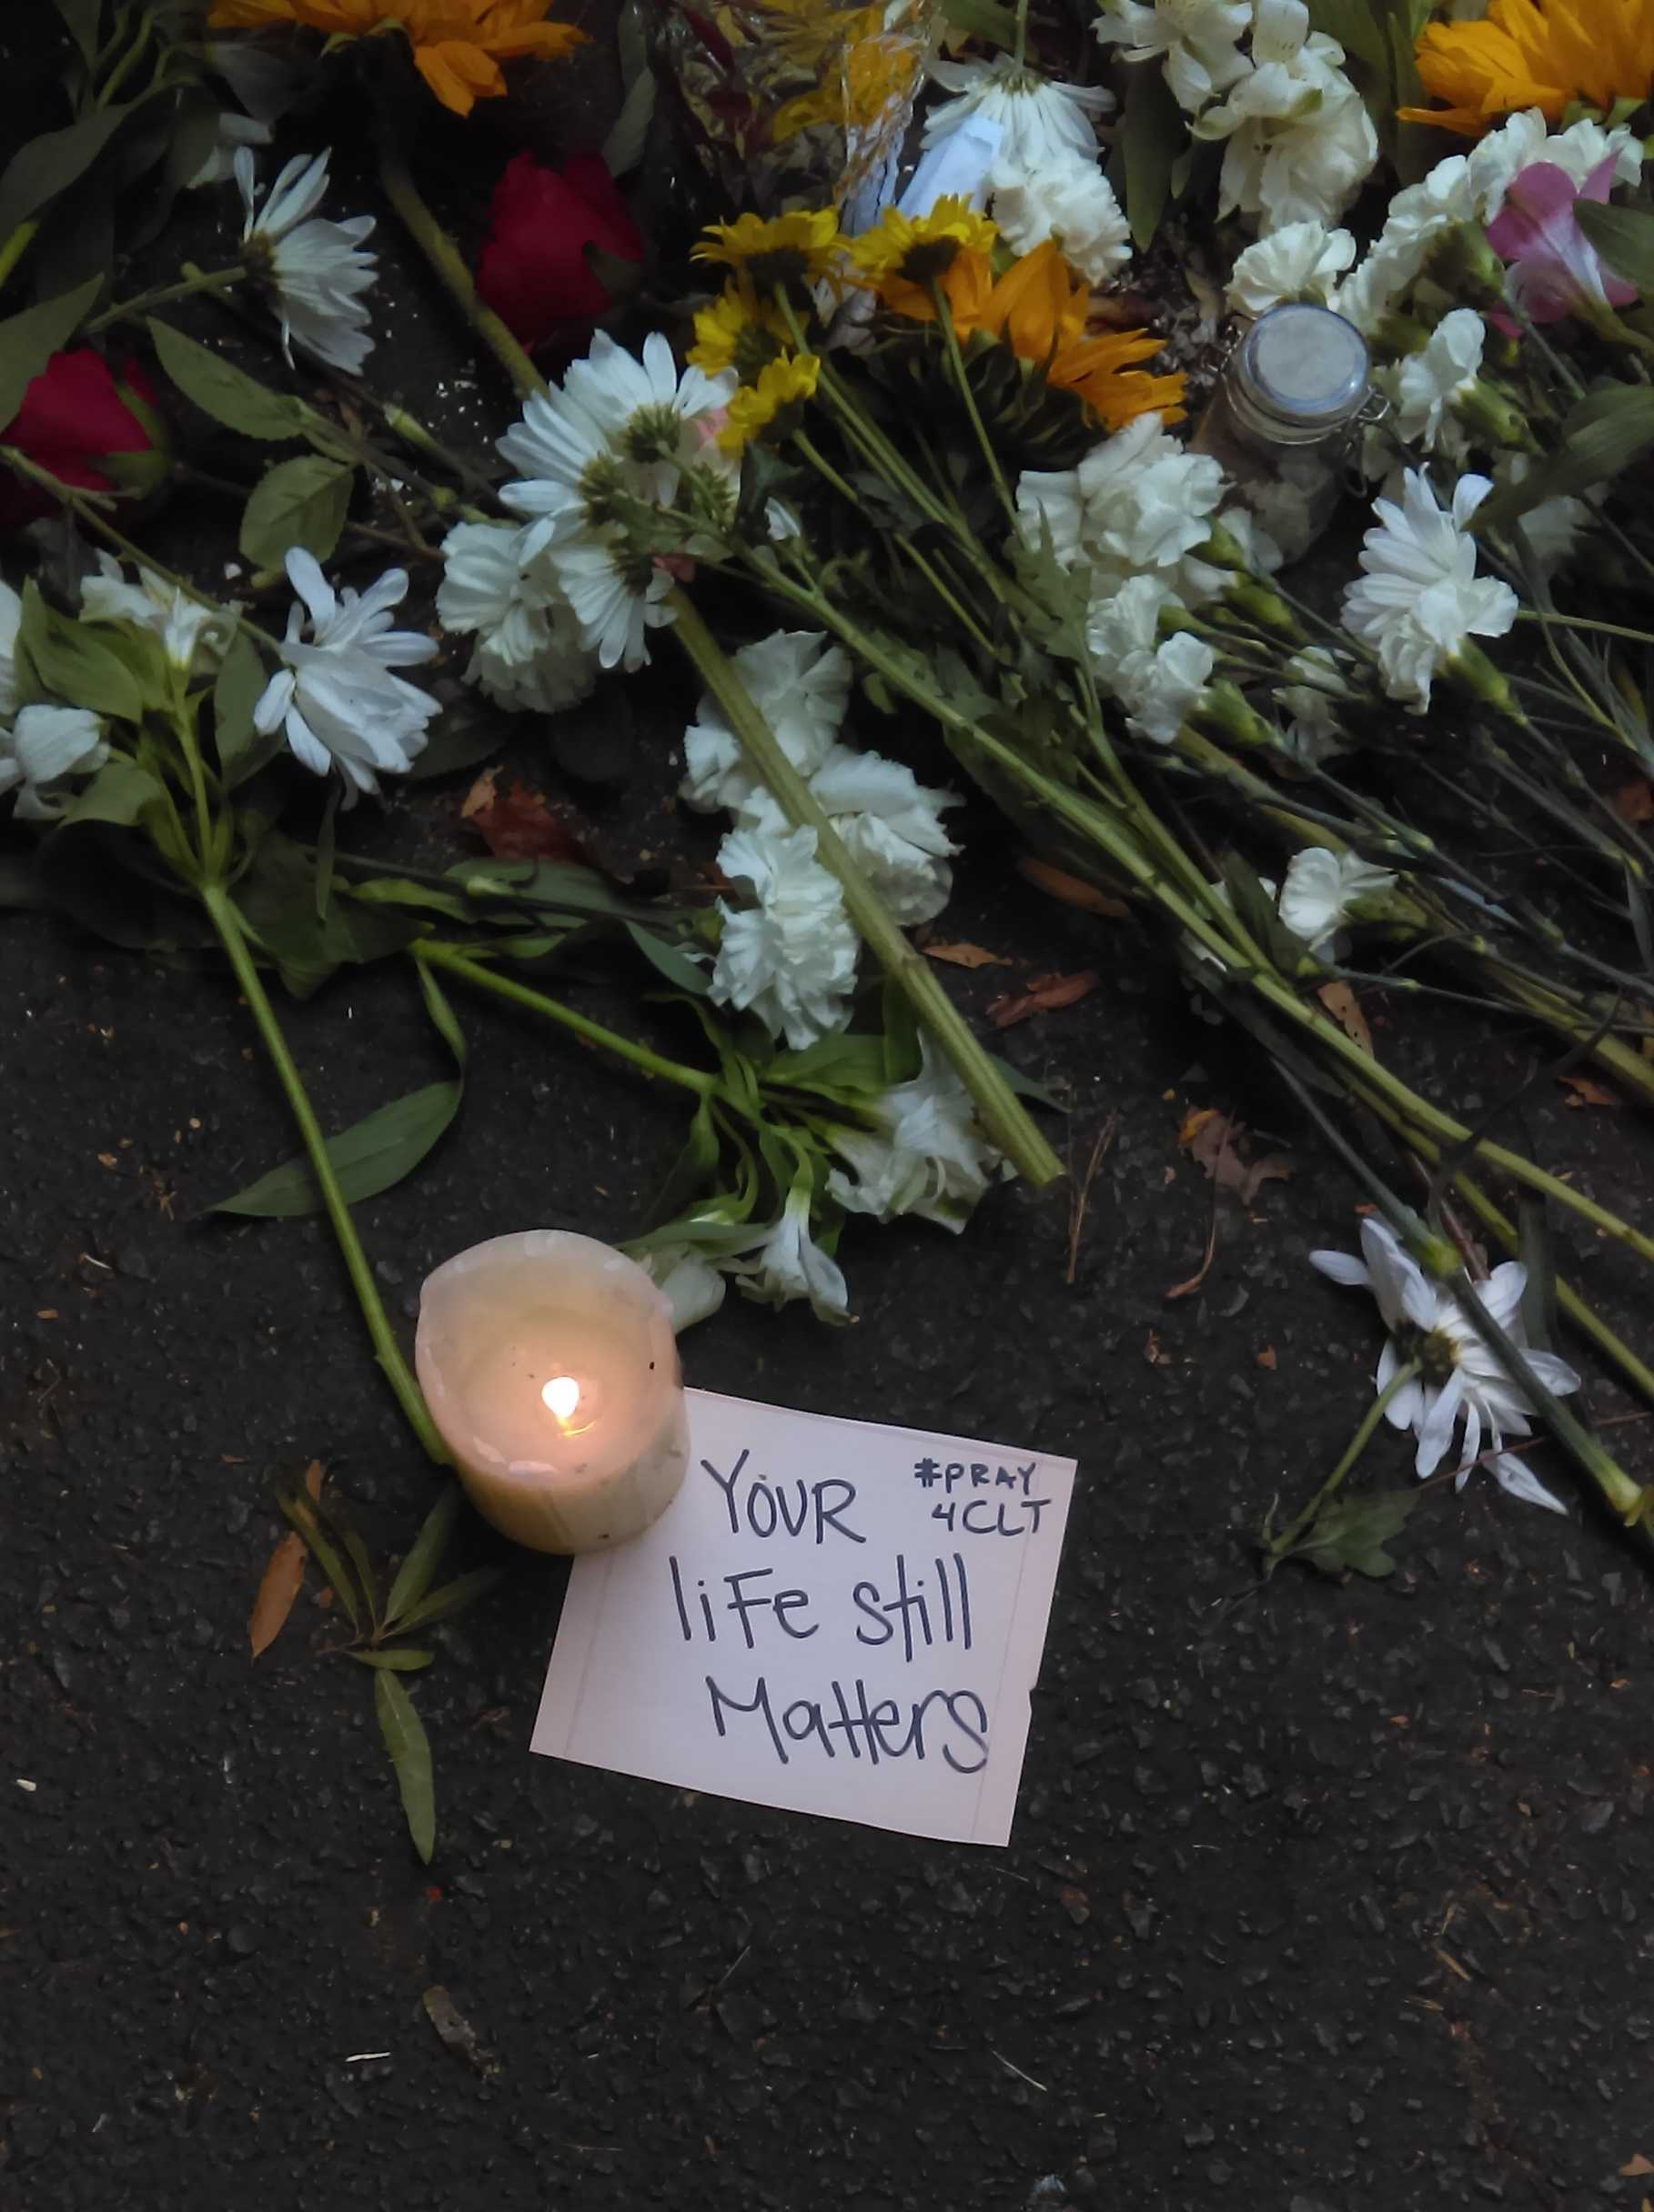 People left flowers and messages near the site where Keith Lamont Scott was killed. Courtesy of Gabe Pollack